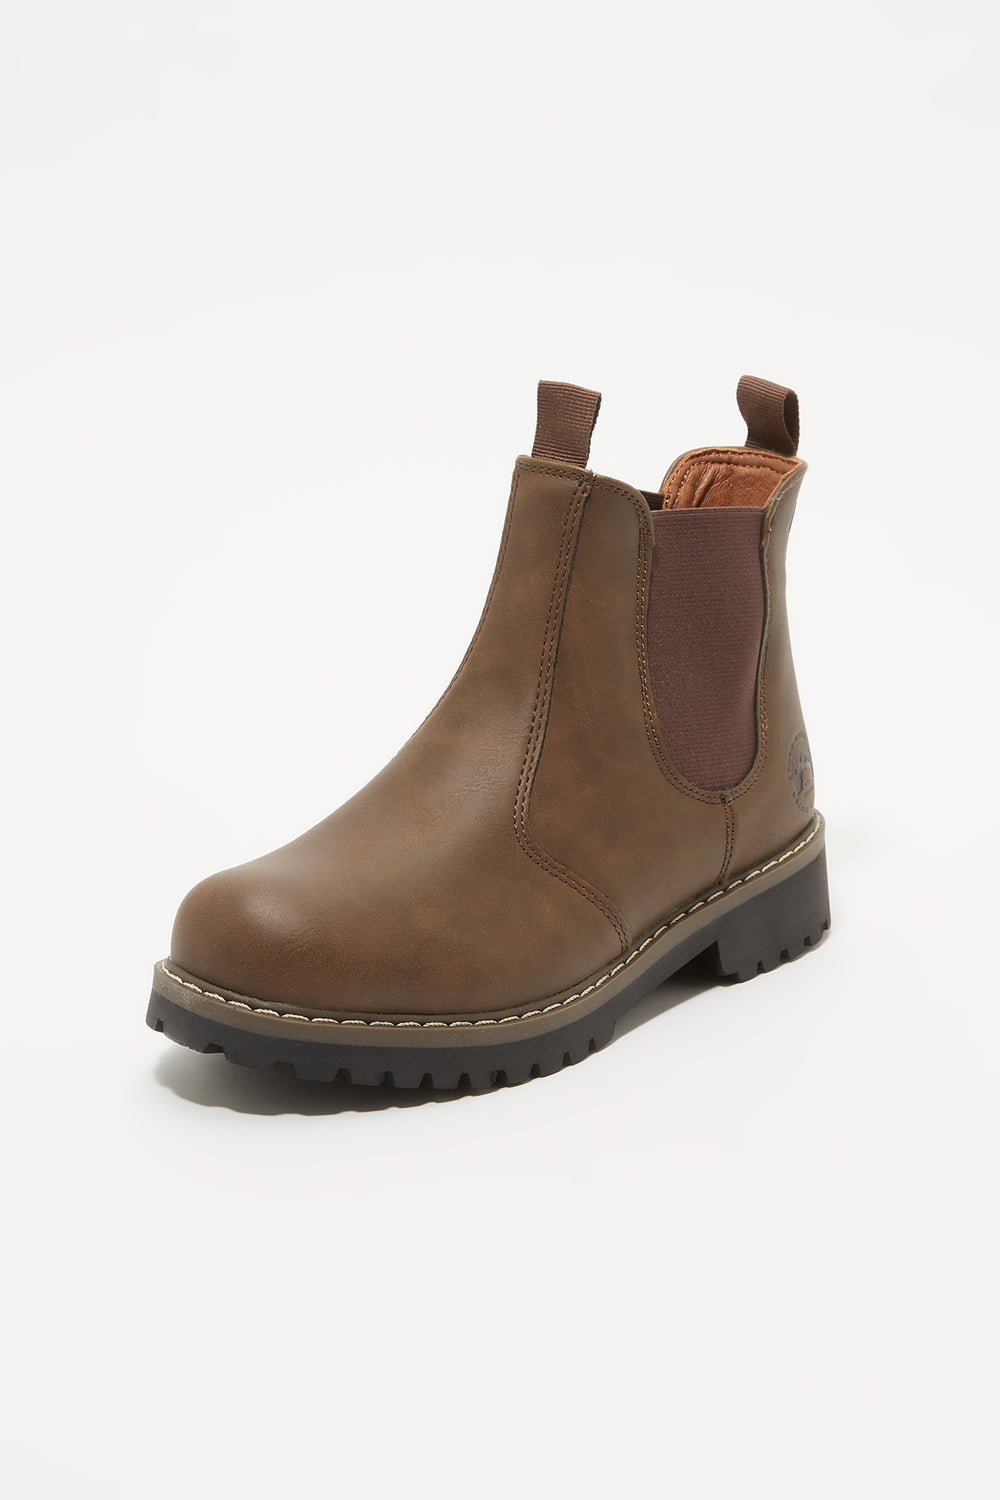 Storm Mountain Youth Faux-Fur Chelsea Boots Brown